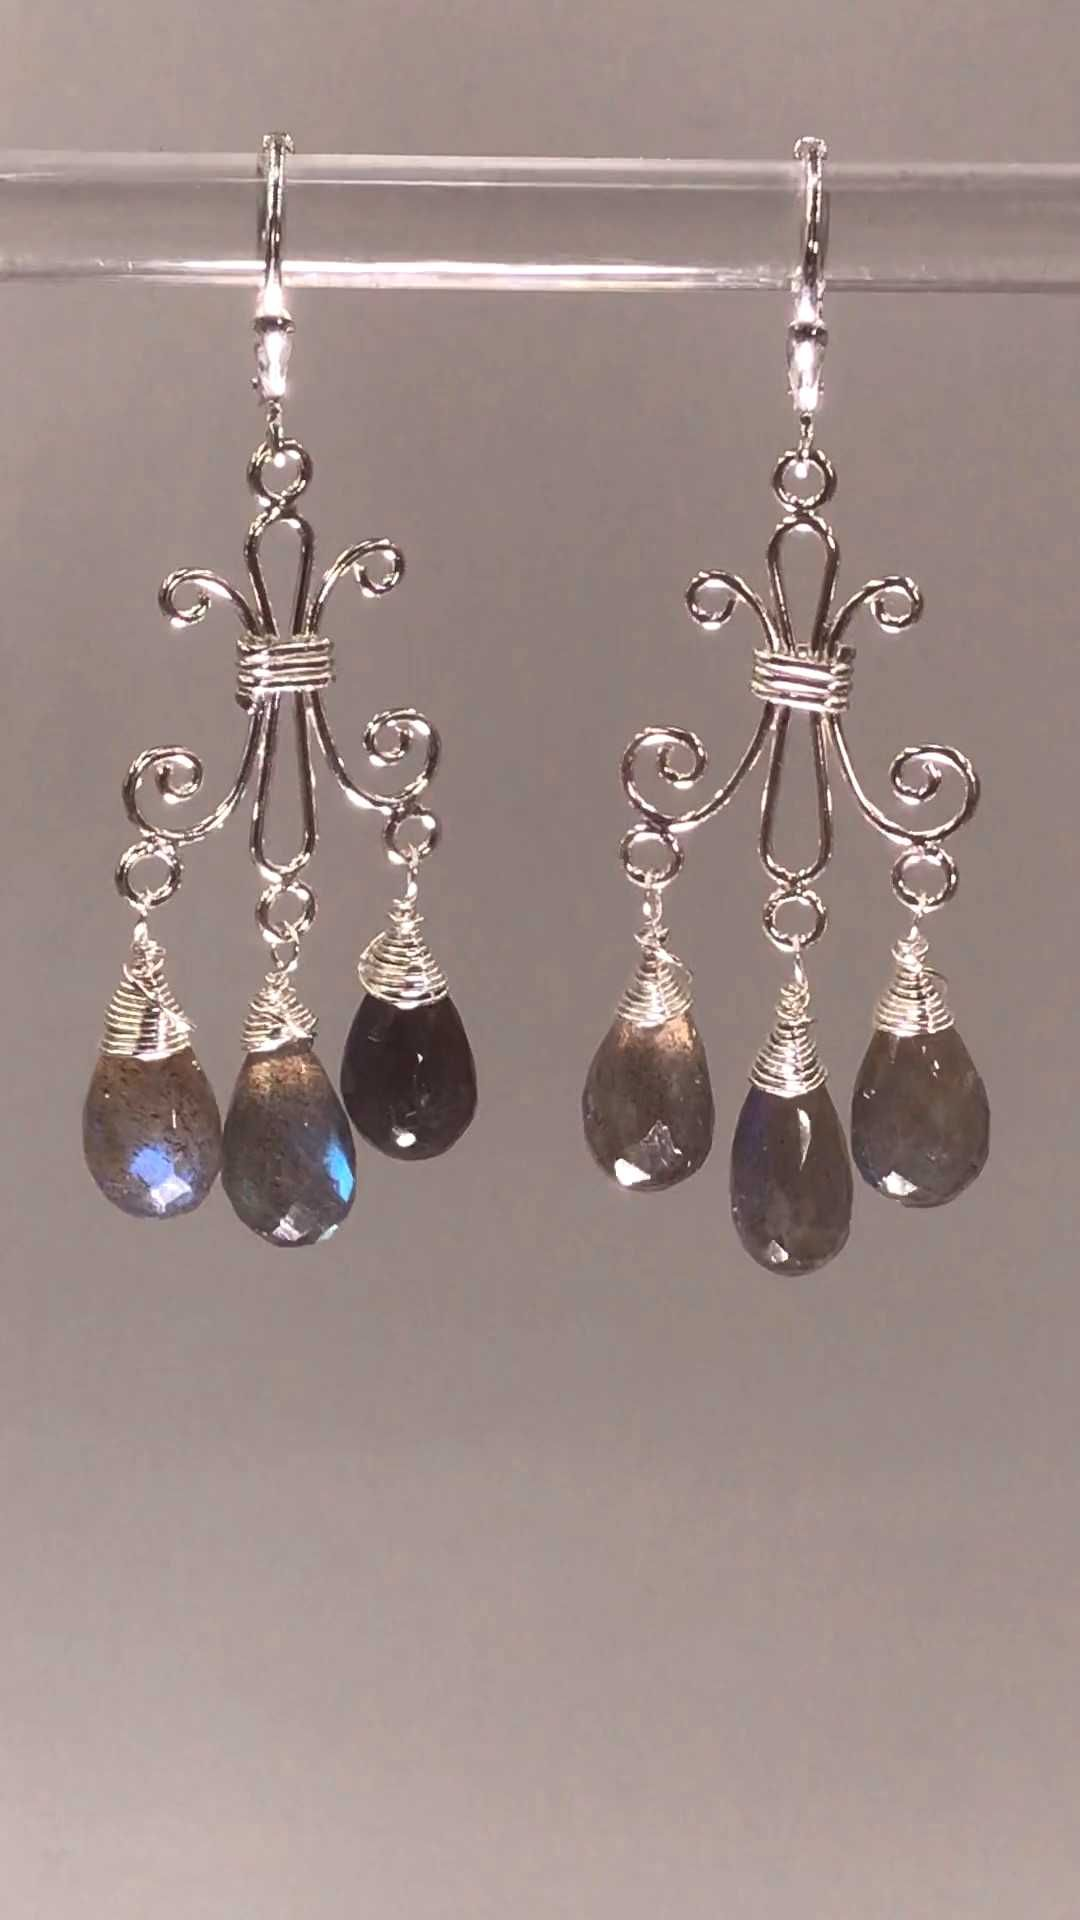 #labradorite #briolettes #chandelier #earrings #sterling #wrapped #silver #dangle #flash #with #lots #blue #wire #of Labr...